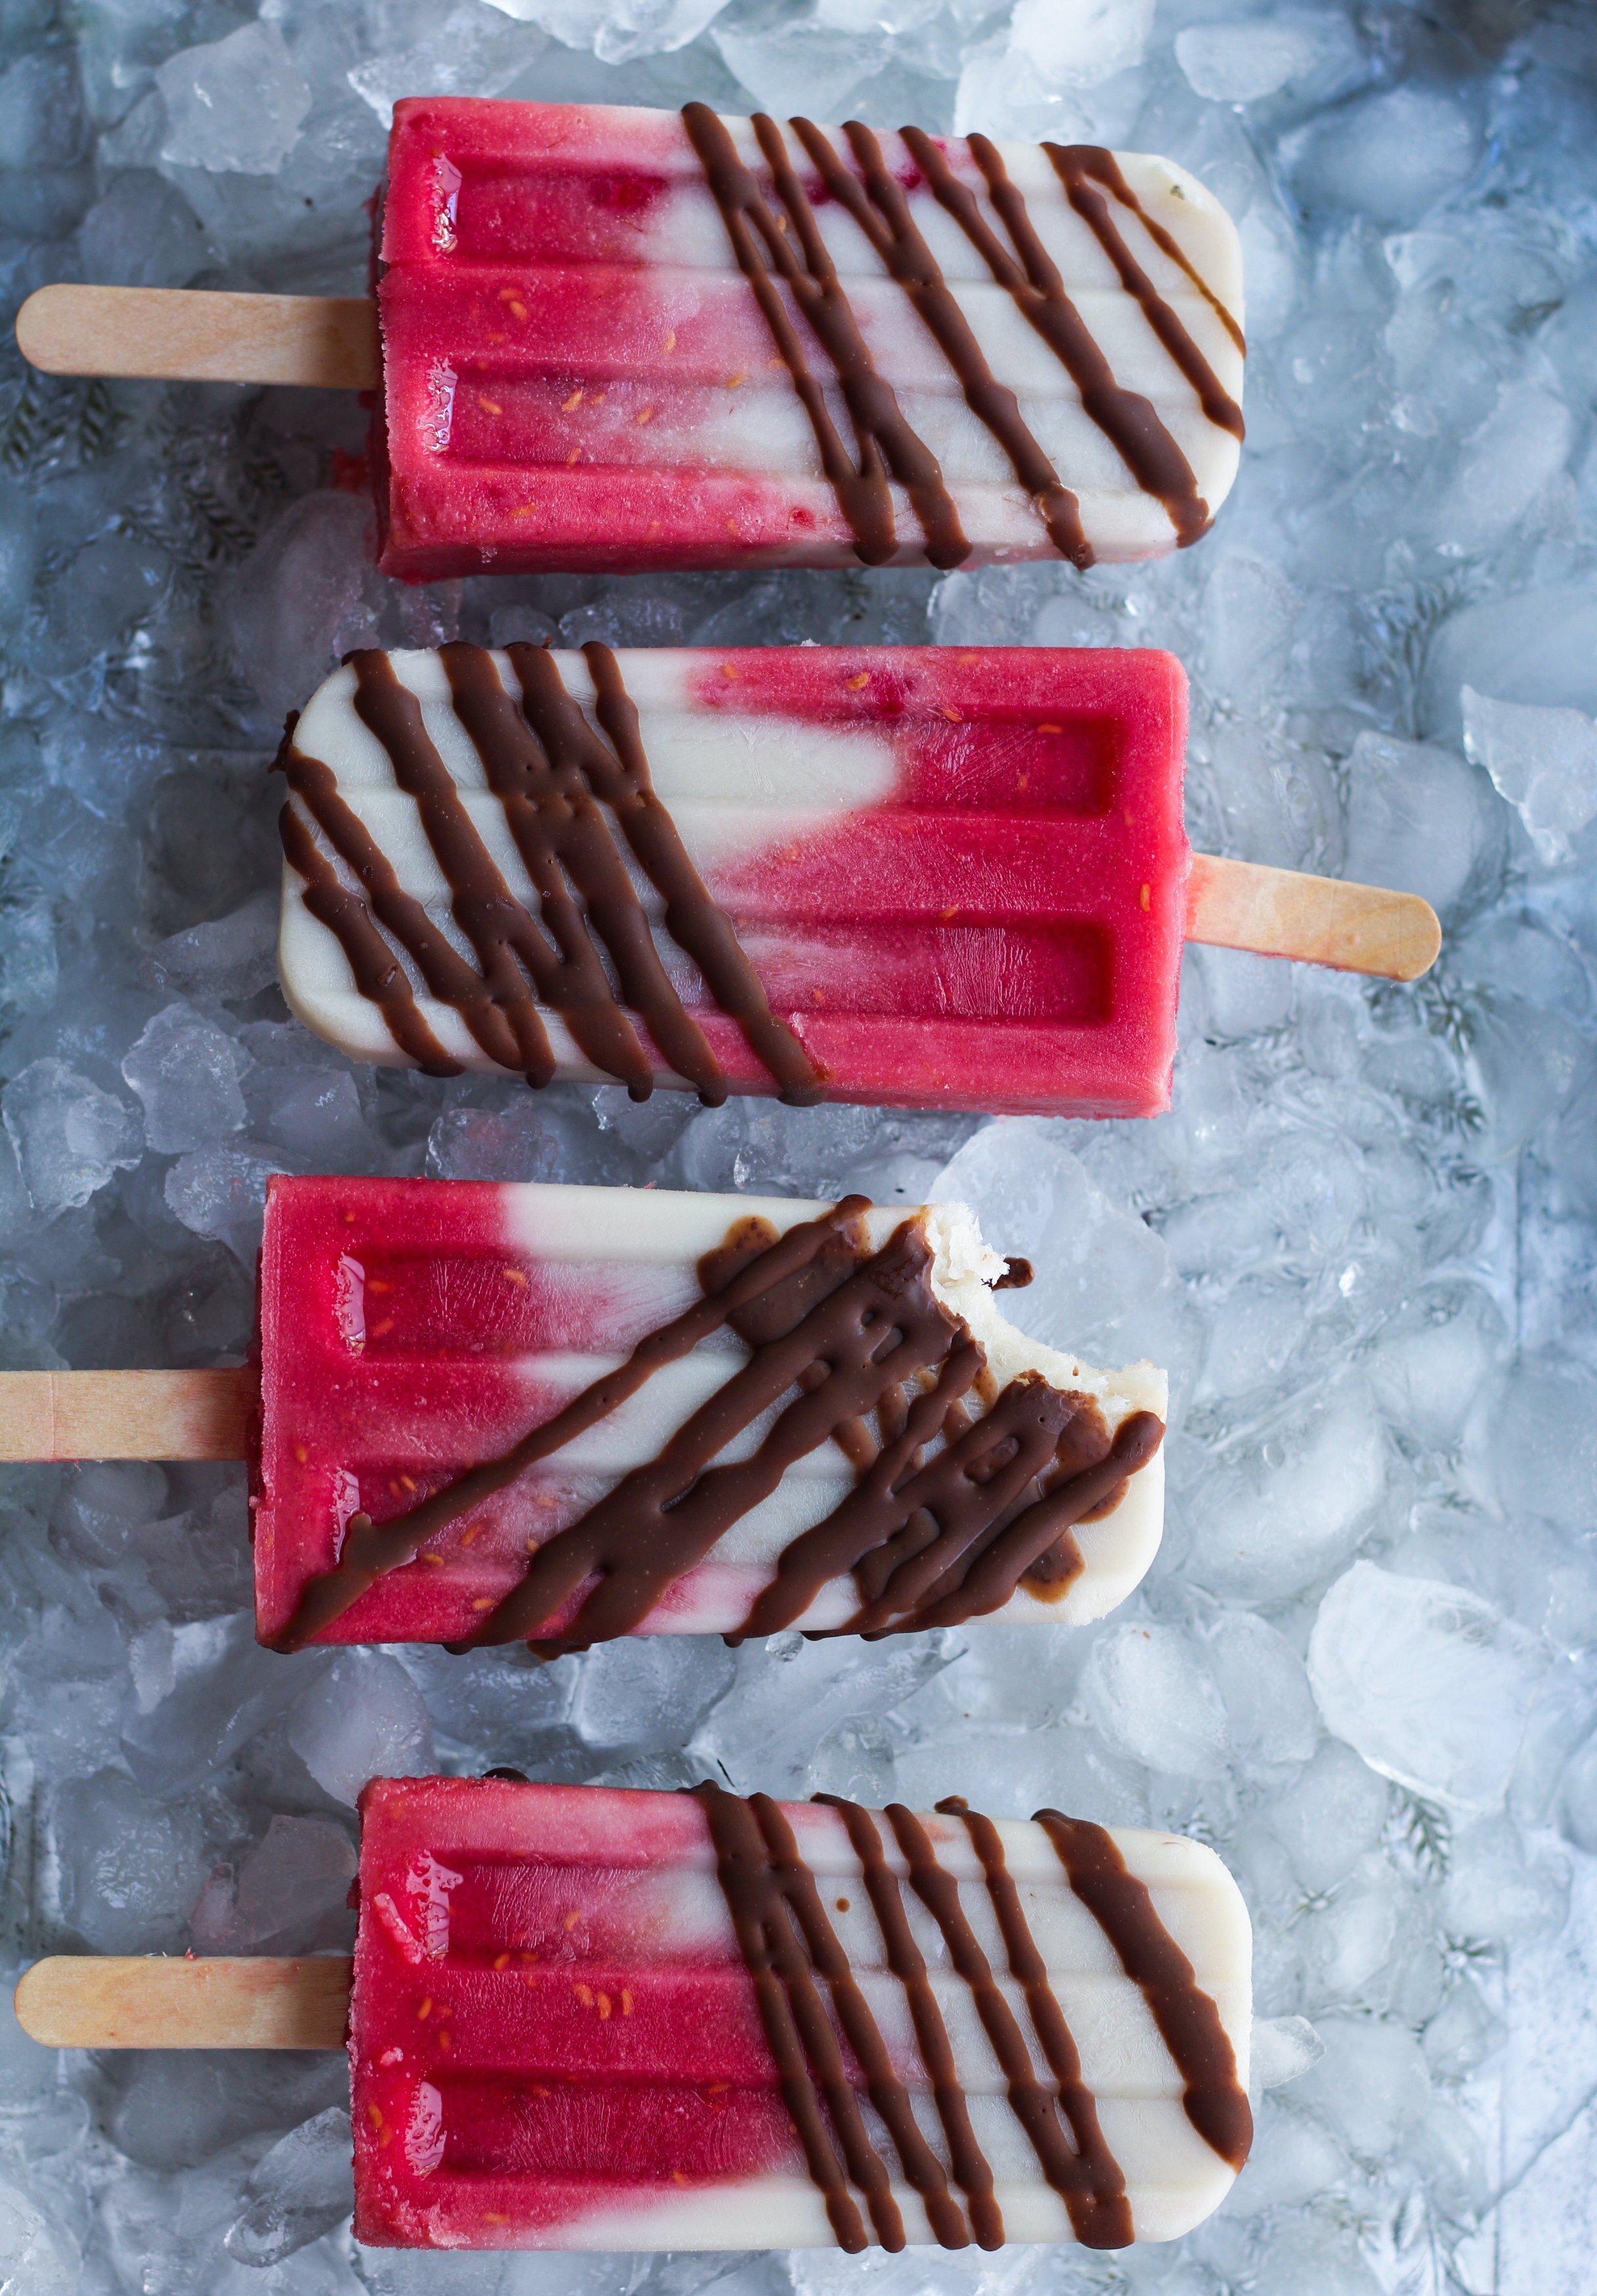 Creamy Almond-Coconut milk Raspberry Popsicles |foodfashionparty| #popsiclephotography #veganpopsicles